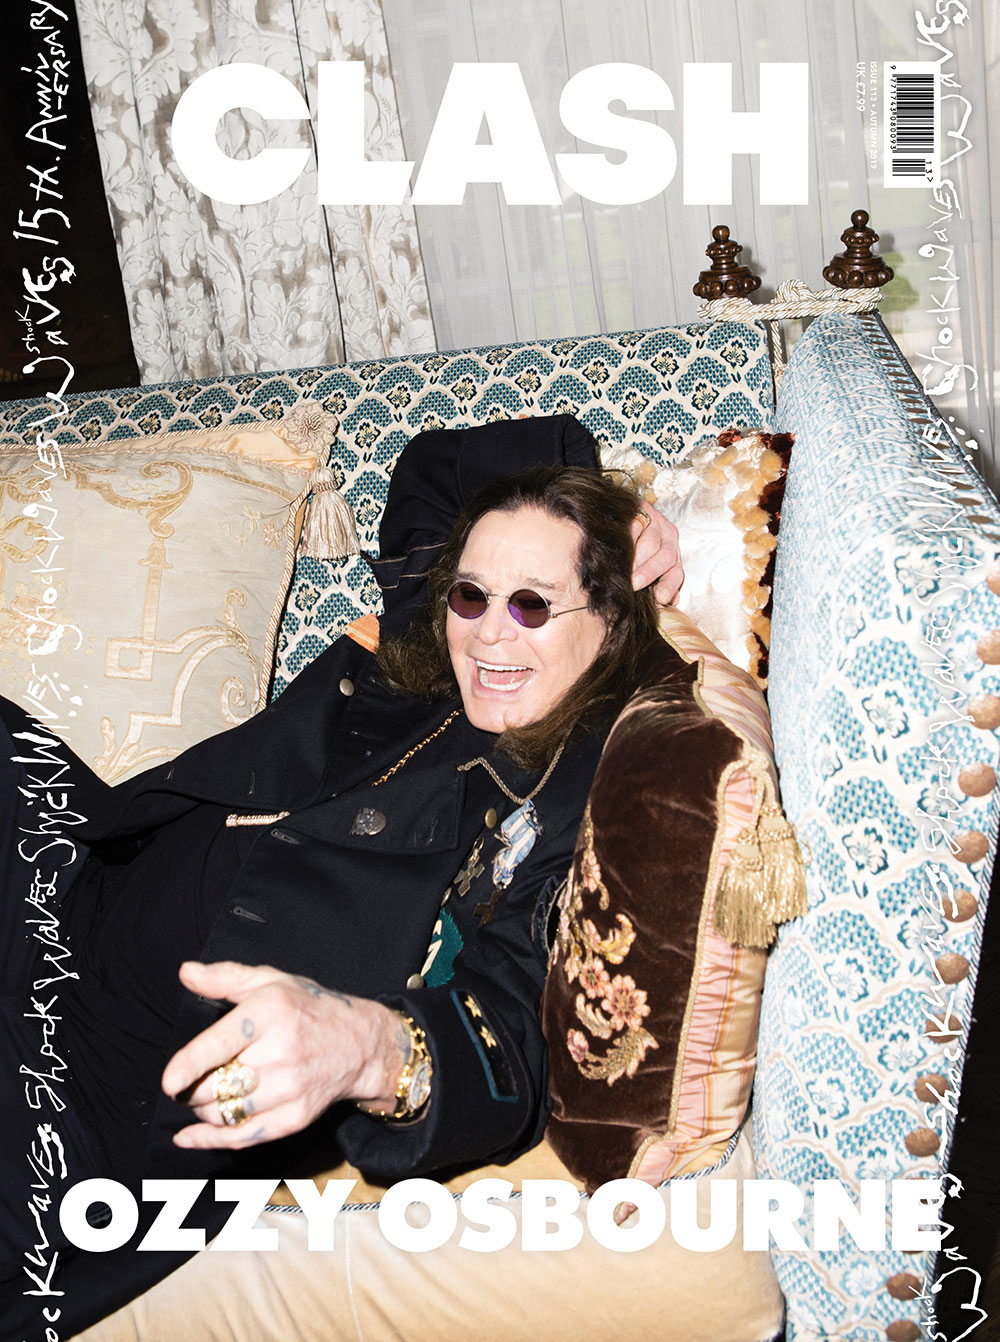 Ozzy Osbourne Clash Magazine Autumn 2019 cover